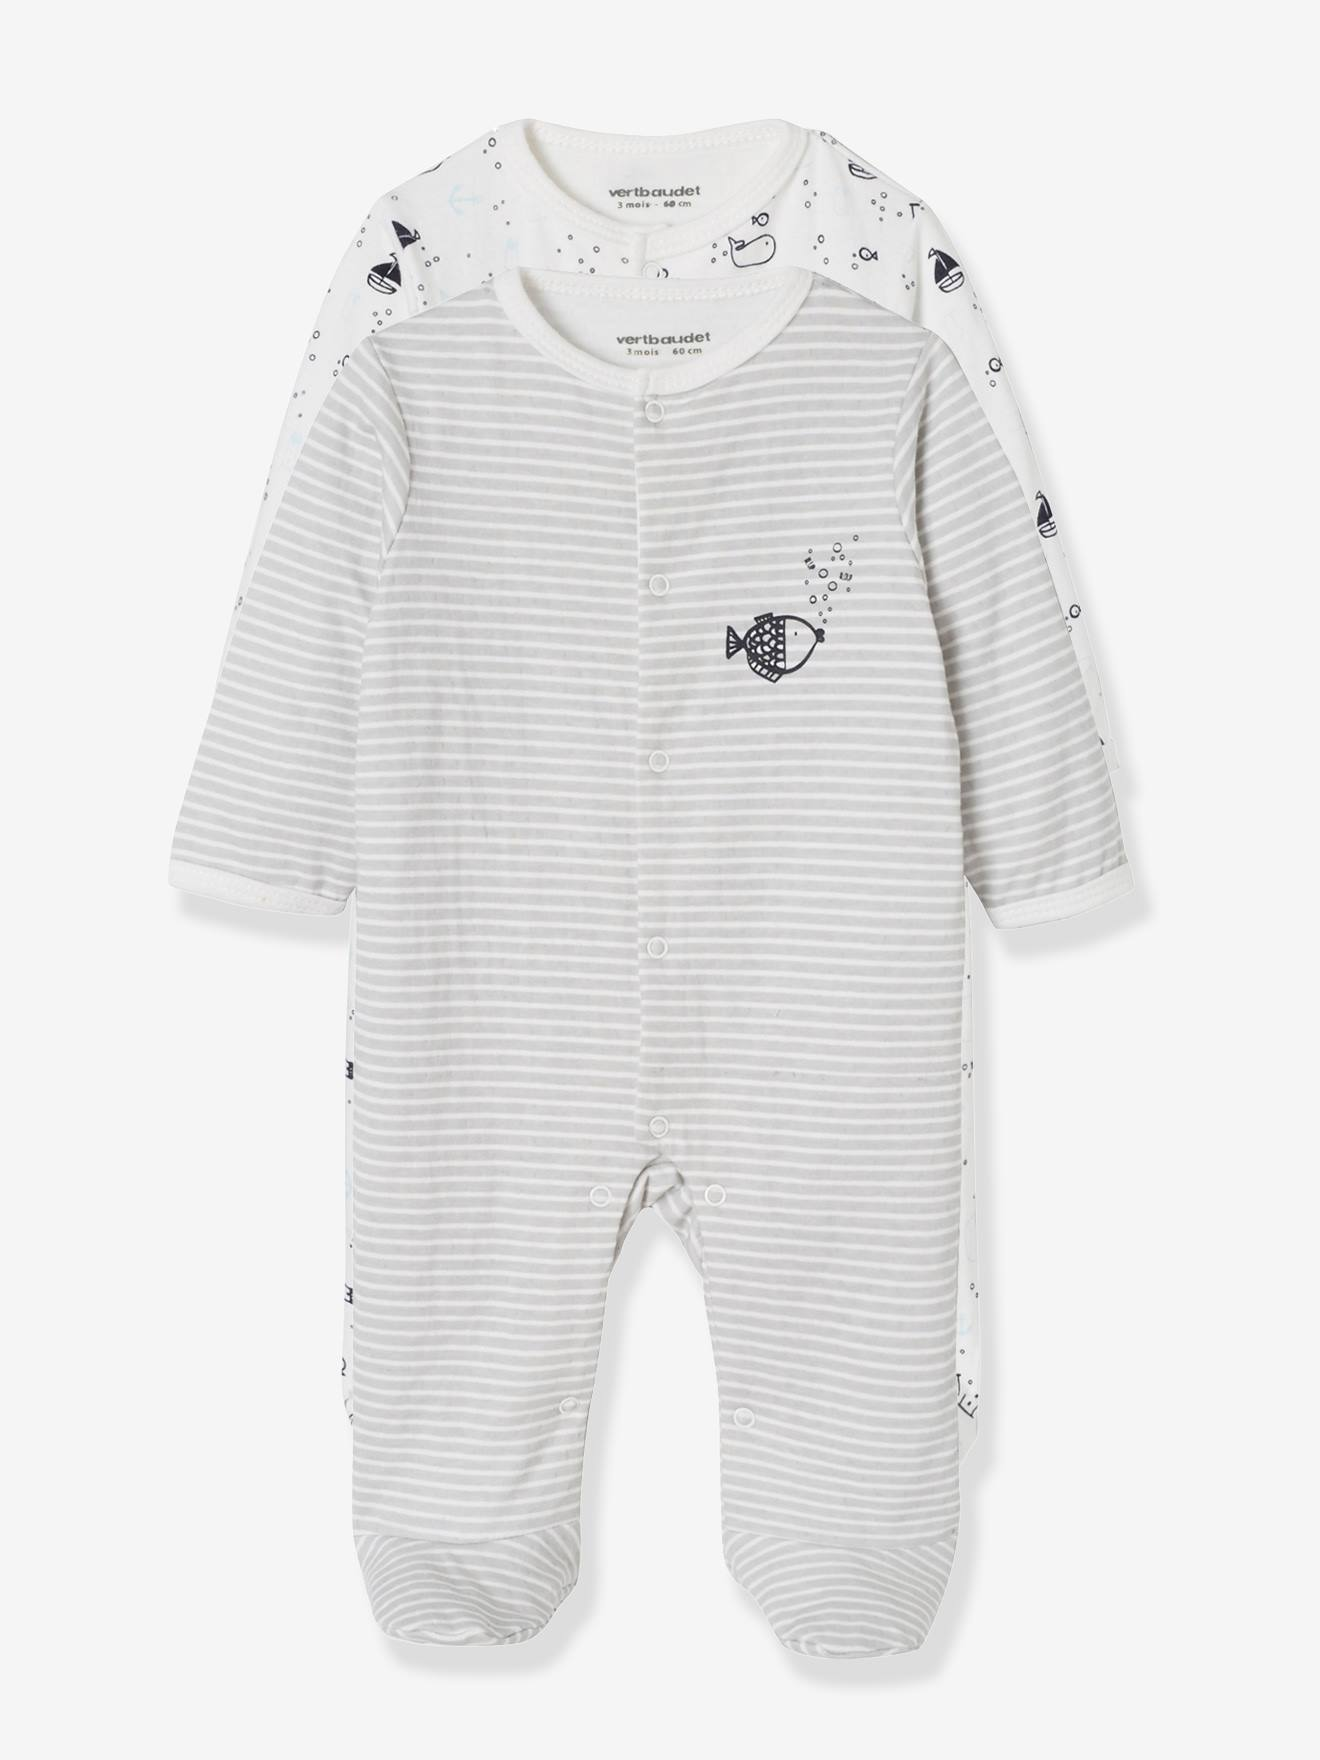 c7312f765f766 Lot de 2 pyjamas bébé en coton double face motif poissons lot anthracite -  Vertbaudet